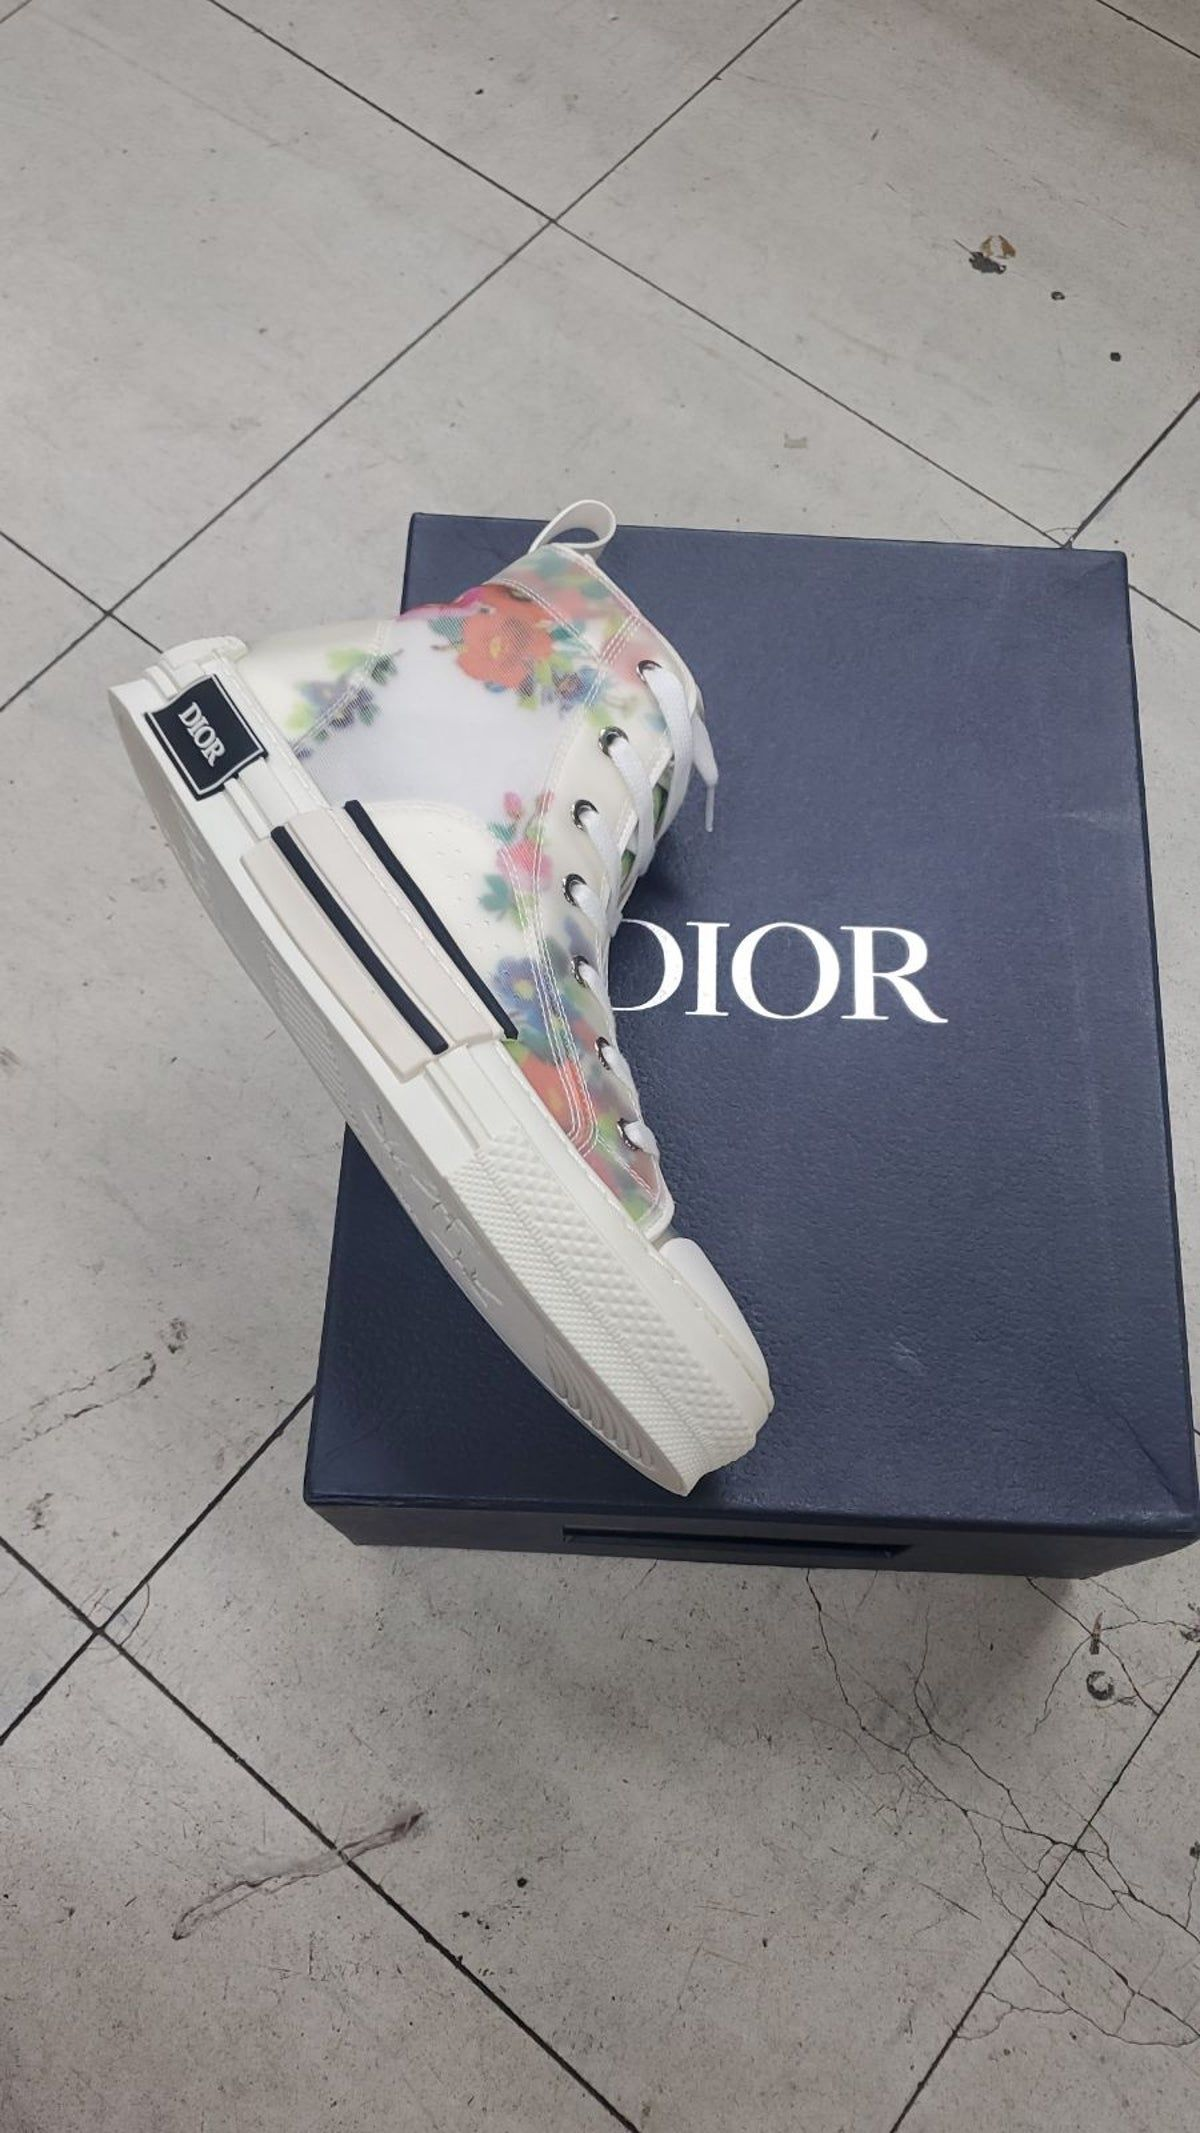 Sneakers, Dior shoes, Aesthetic shoes